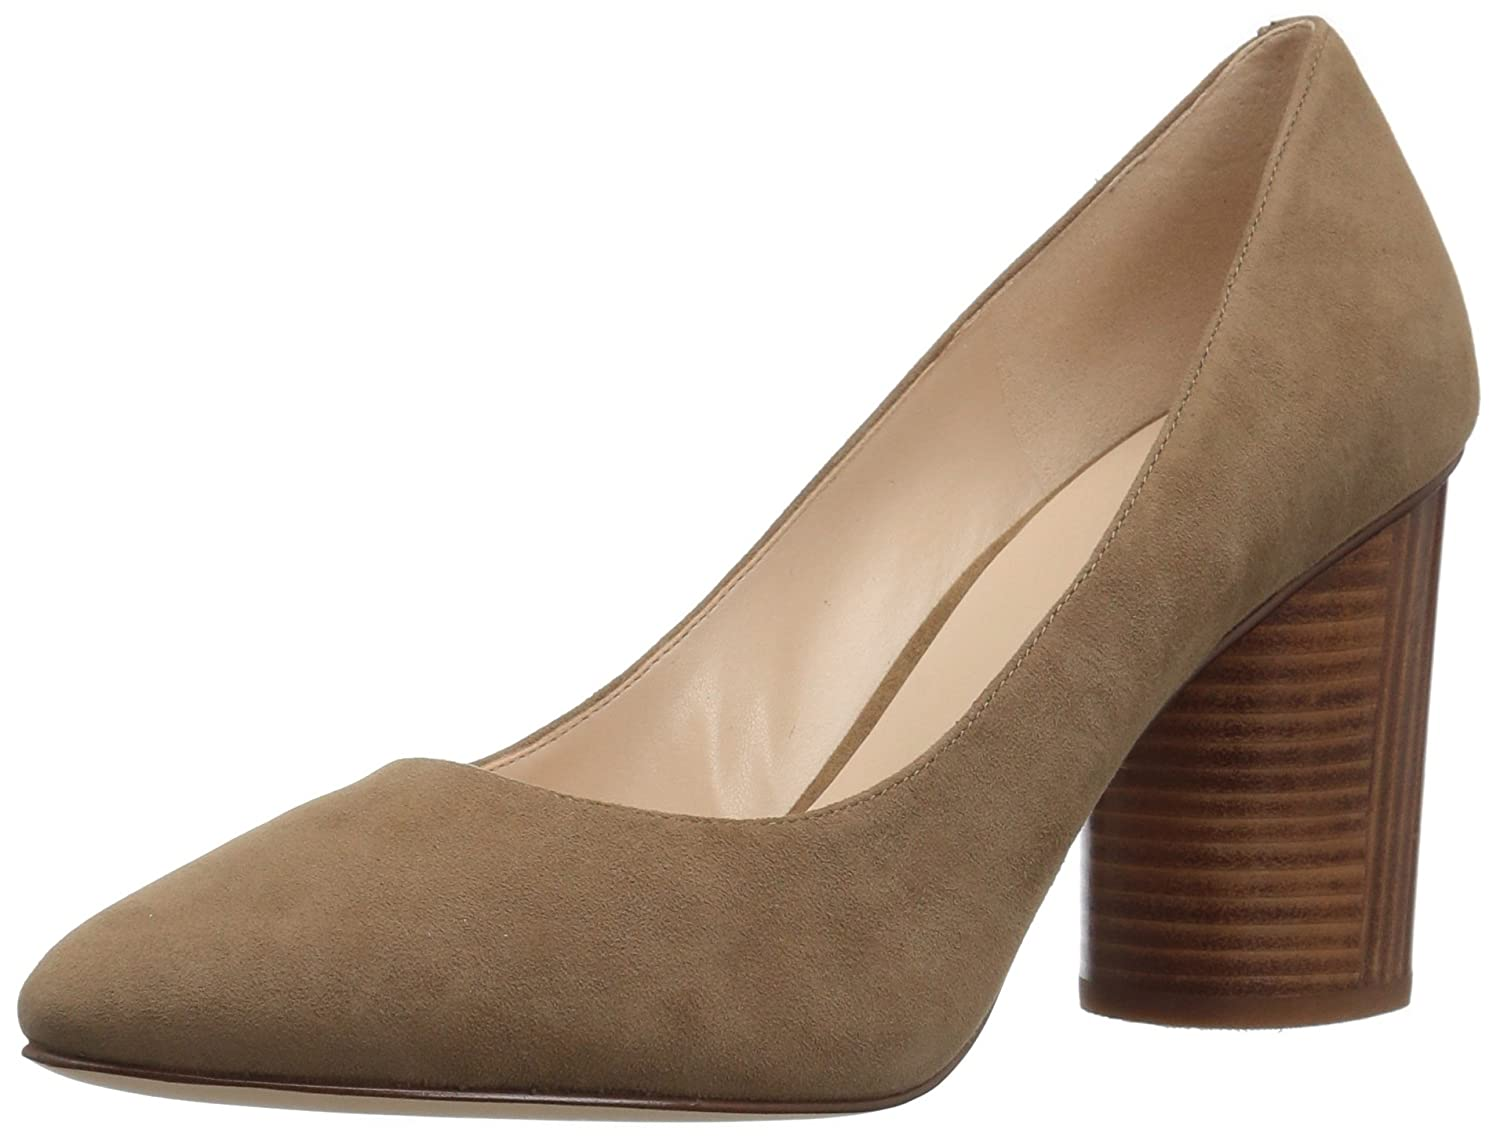 Nine West Women's Cardya Leather Pump B06VV3T43G 8 B(M) US|Green Suede